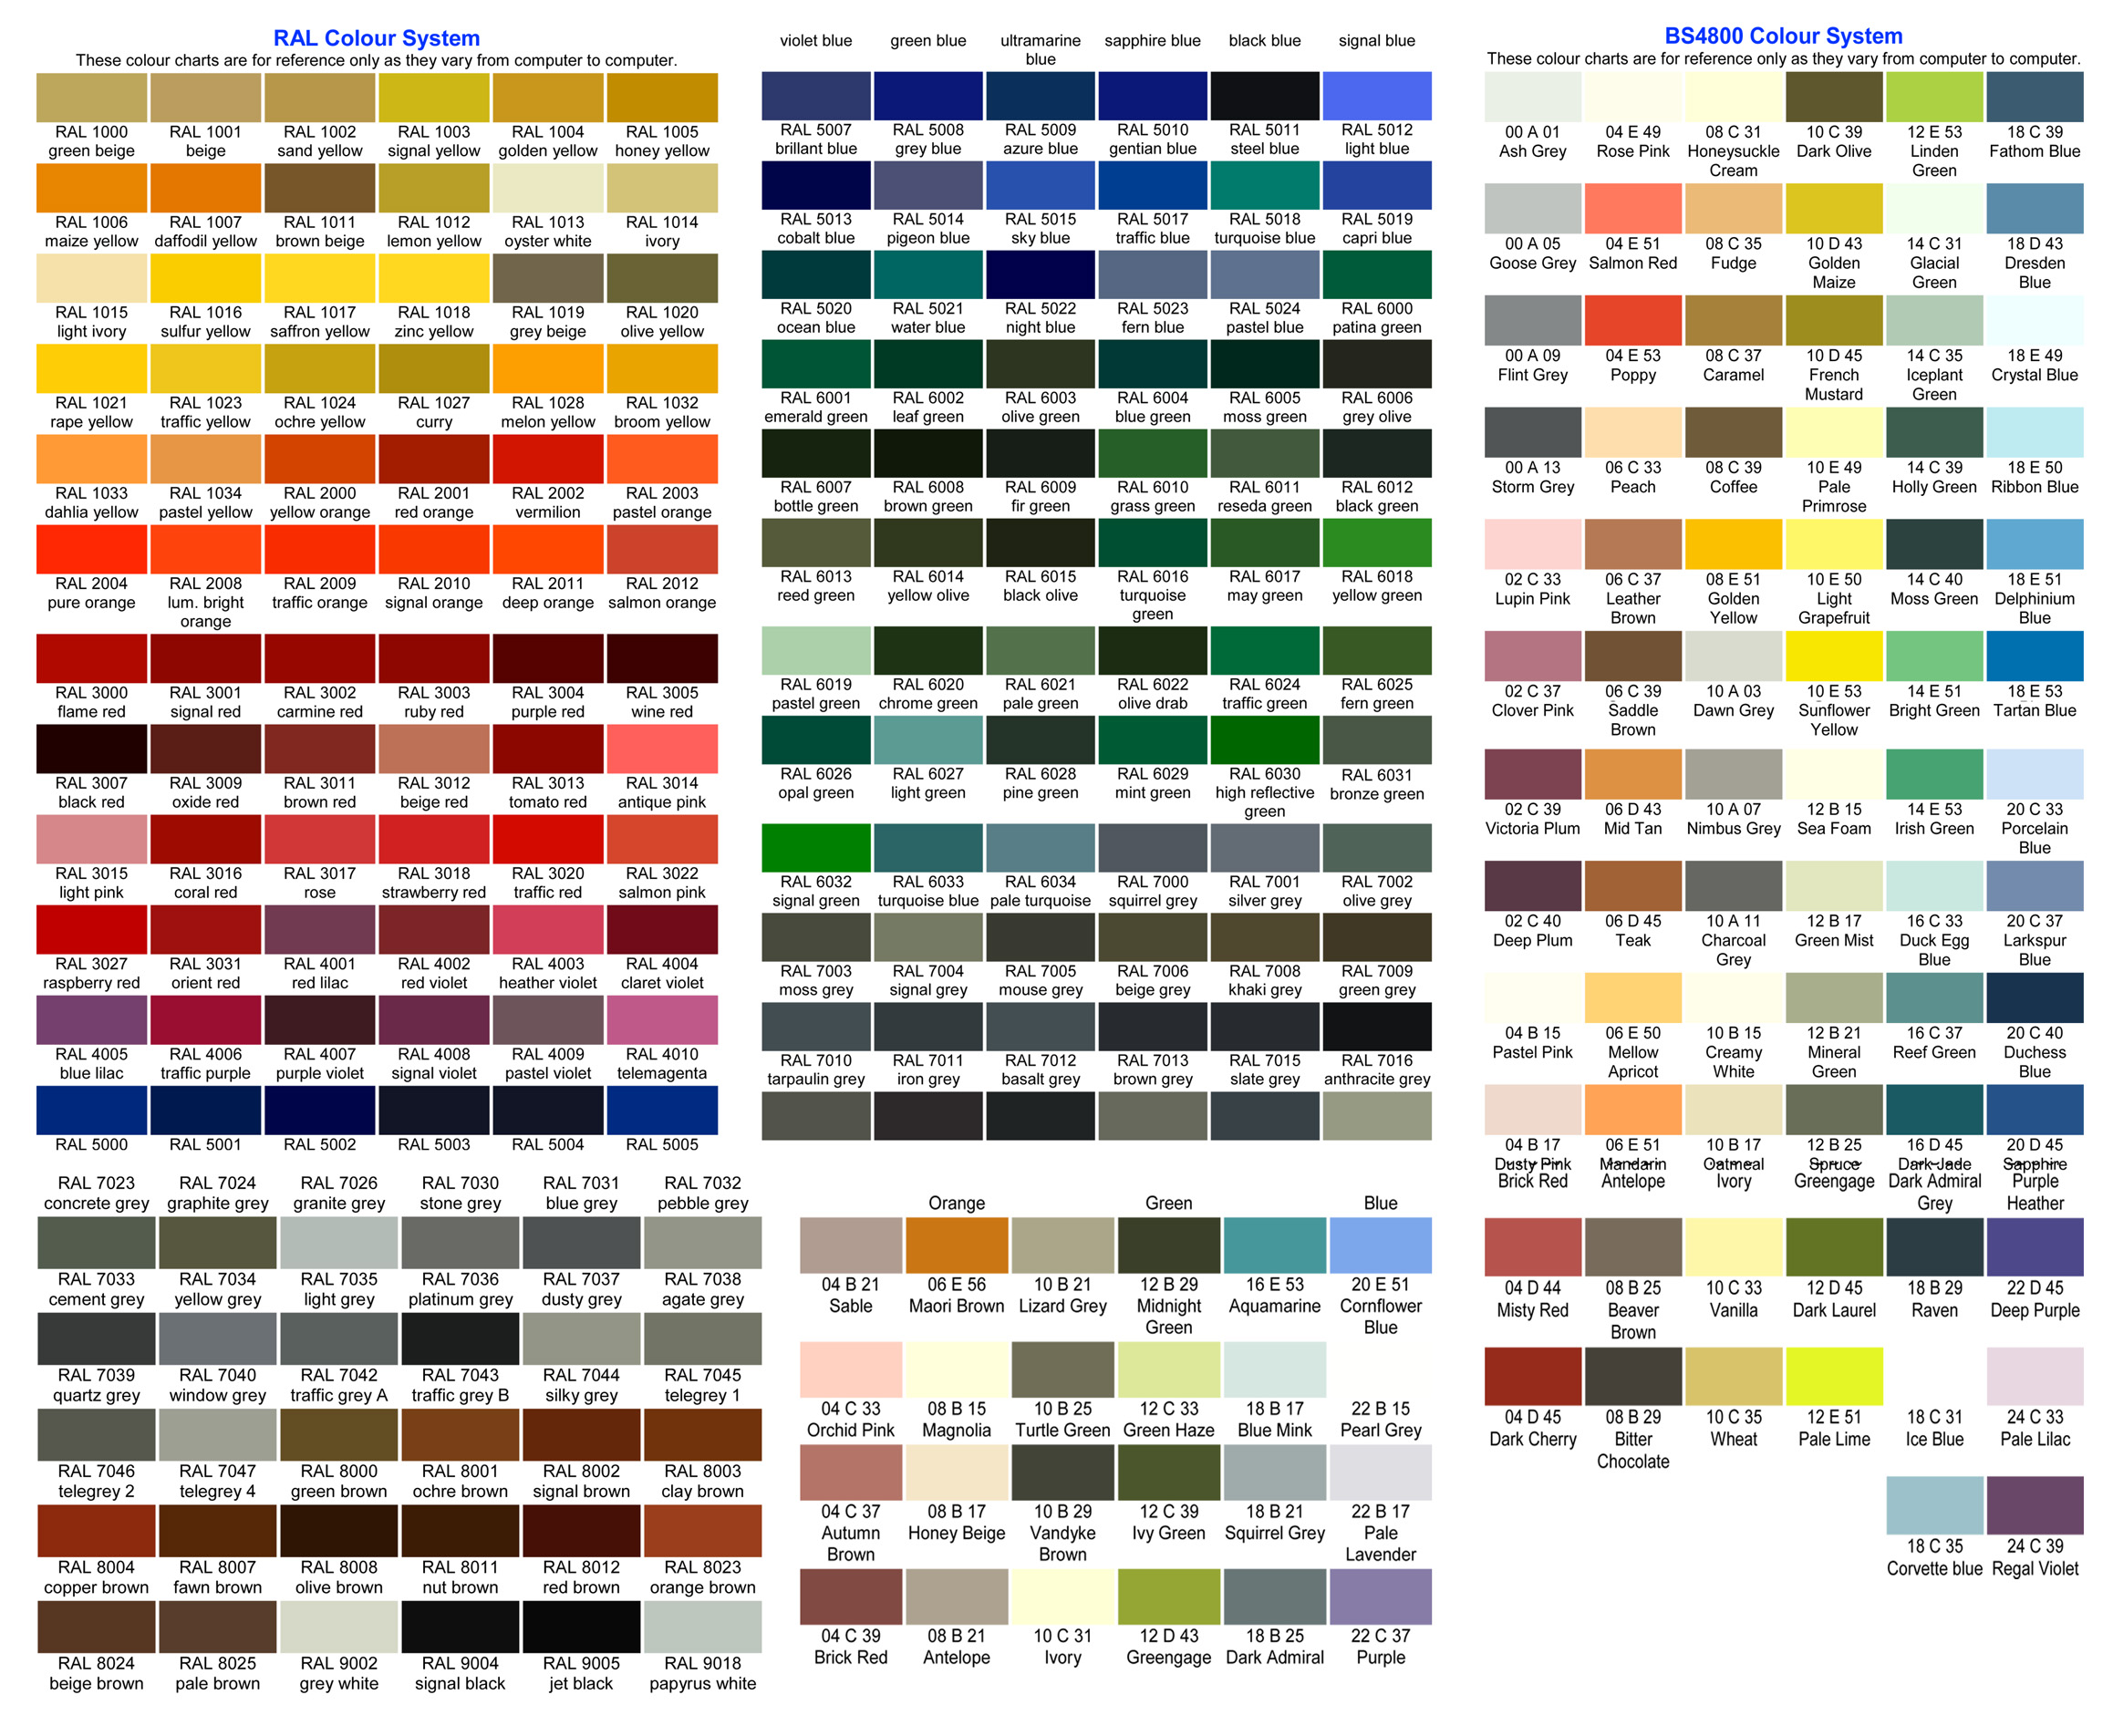 Pantone to ral conversion chart images free any chart examples ral color chart free download images chart example ideas ralchartg ral click here to see all nvjuhfo Images